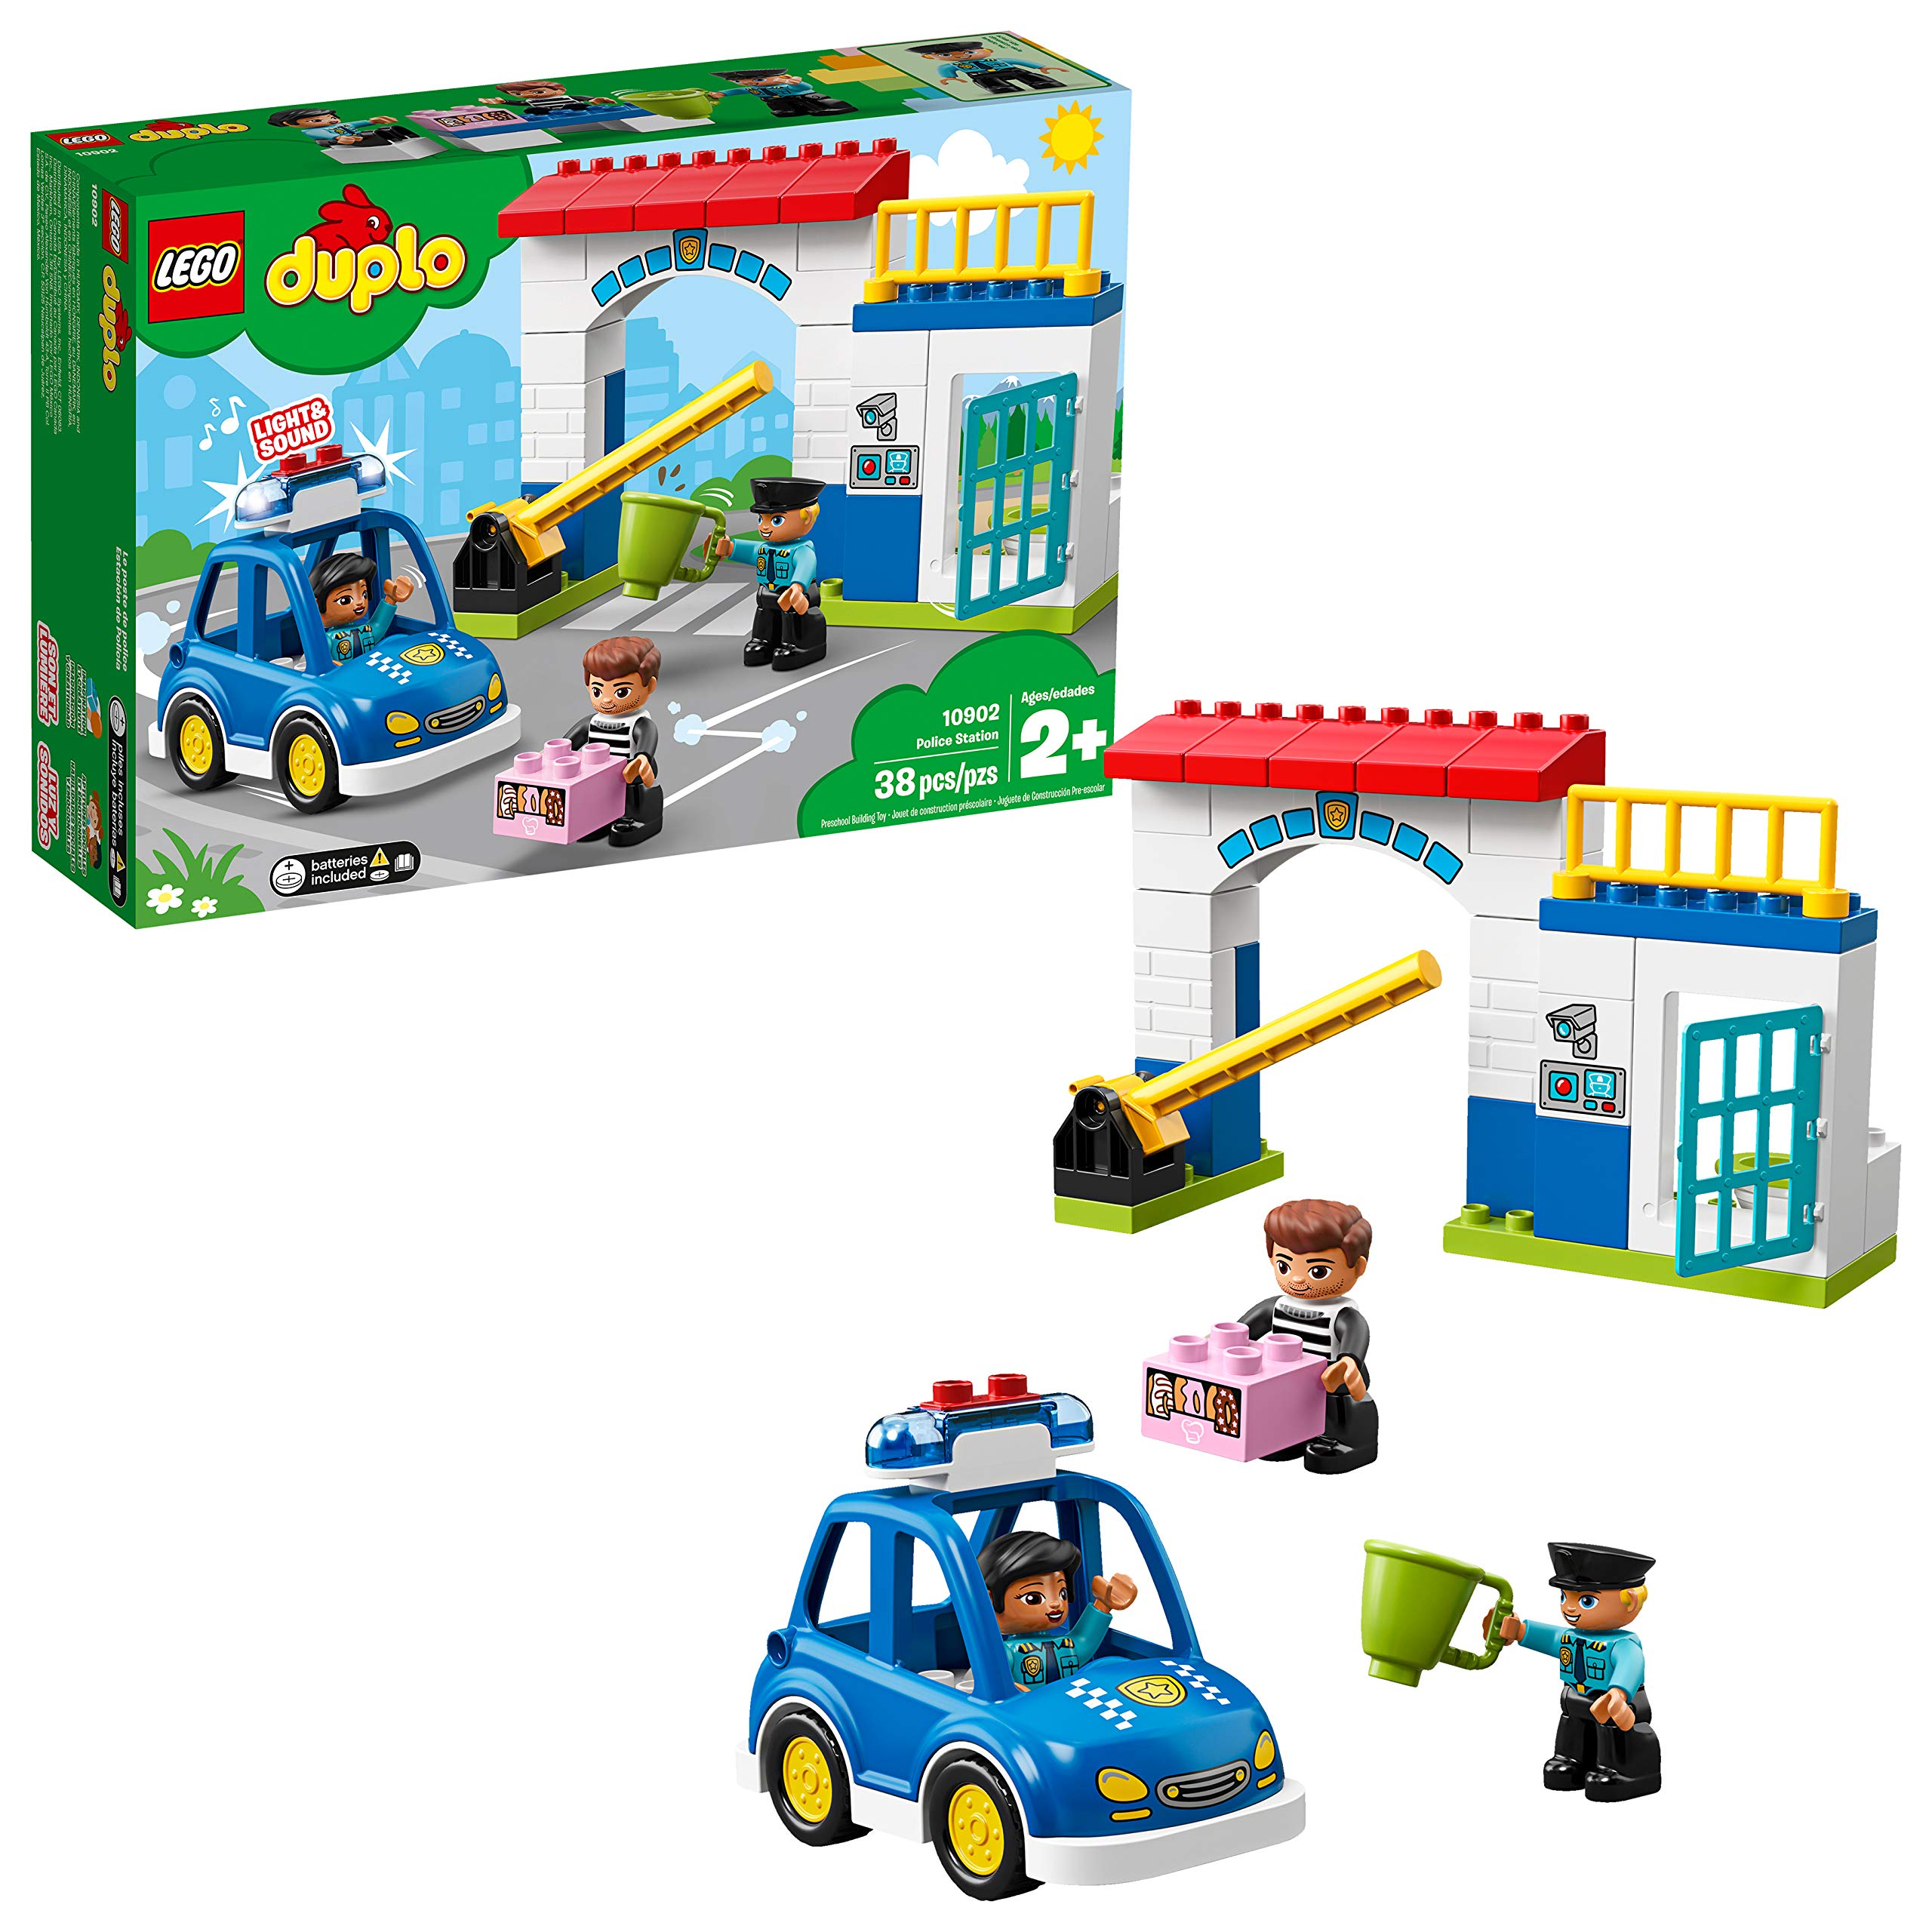 FIRST BLOCK POLICE BUILDING SET KIDS CONSTRUCTION LEGO GIFT TOY XMAS FUN NEW